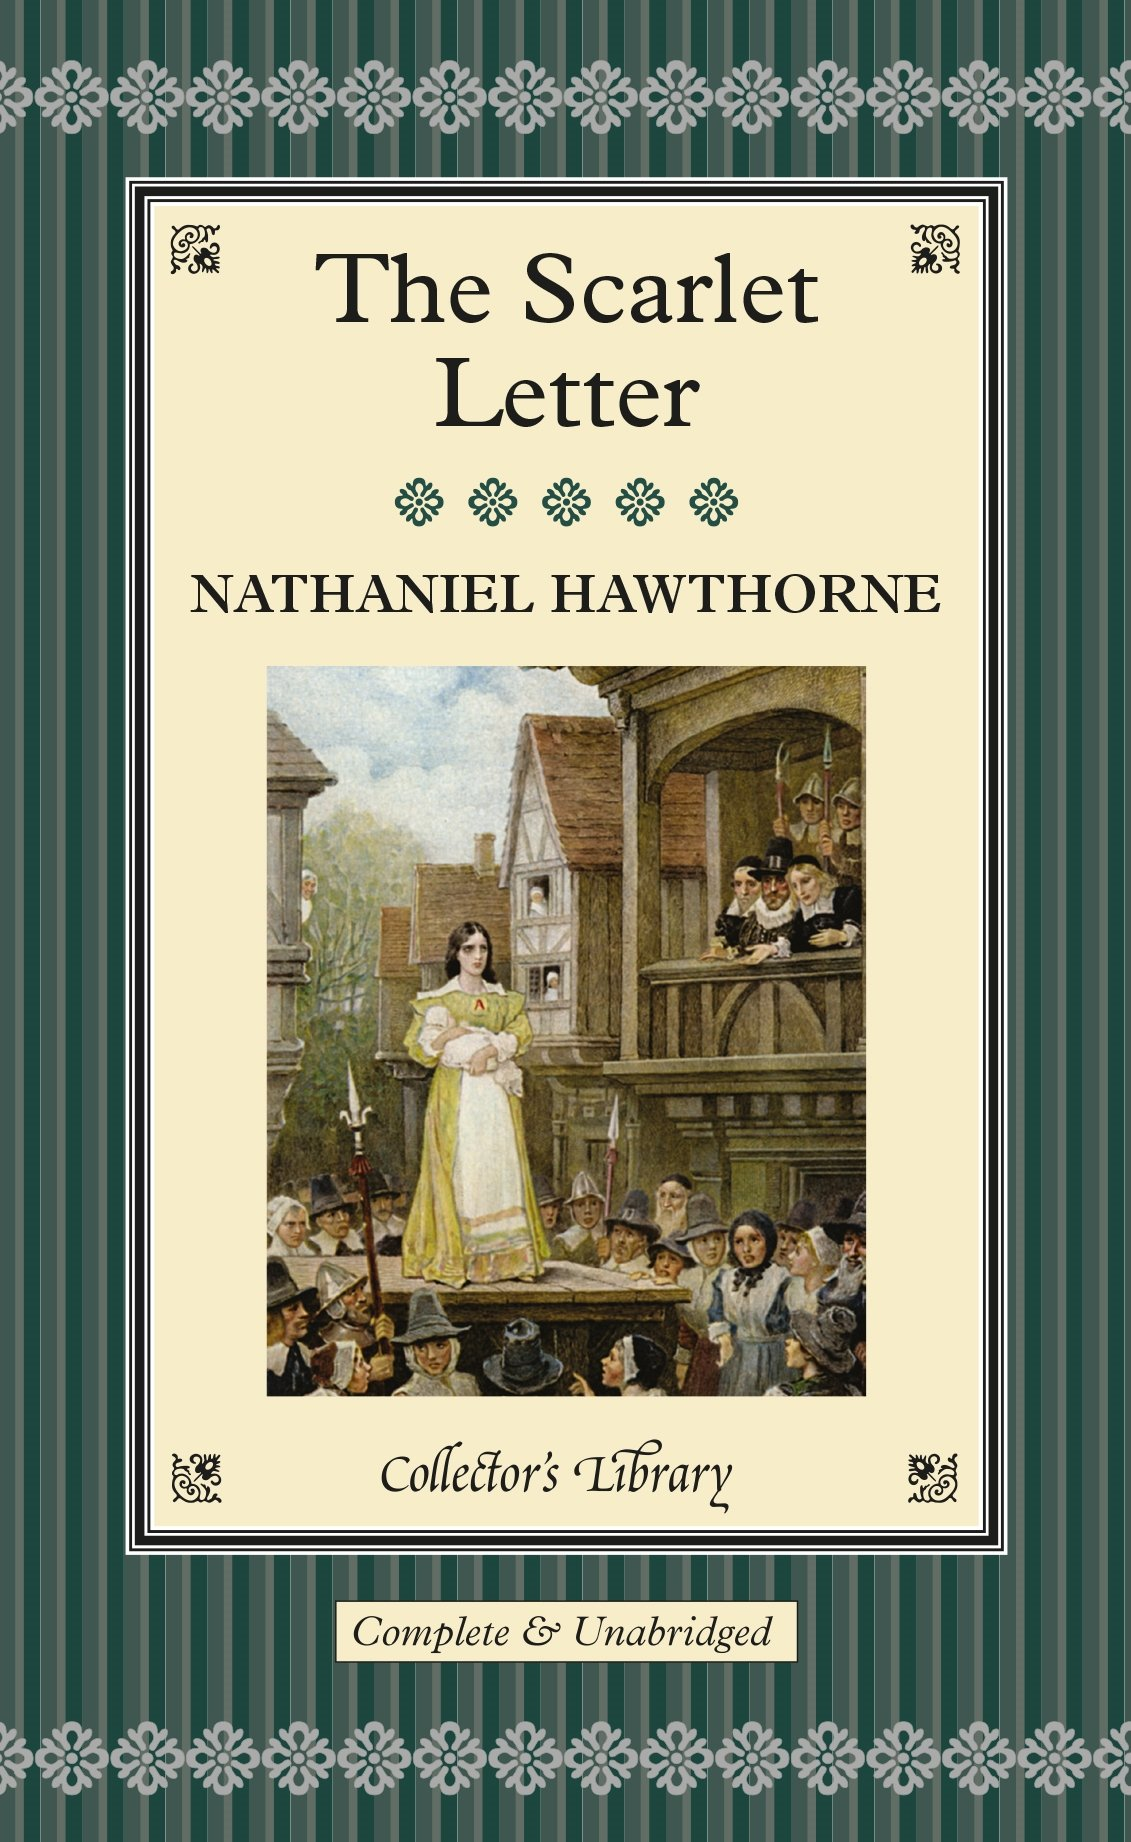 scarlet letter collectors library nathaniel hawthorne 9781904633129 amazoncom books